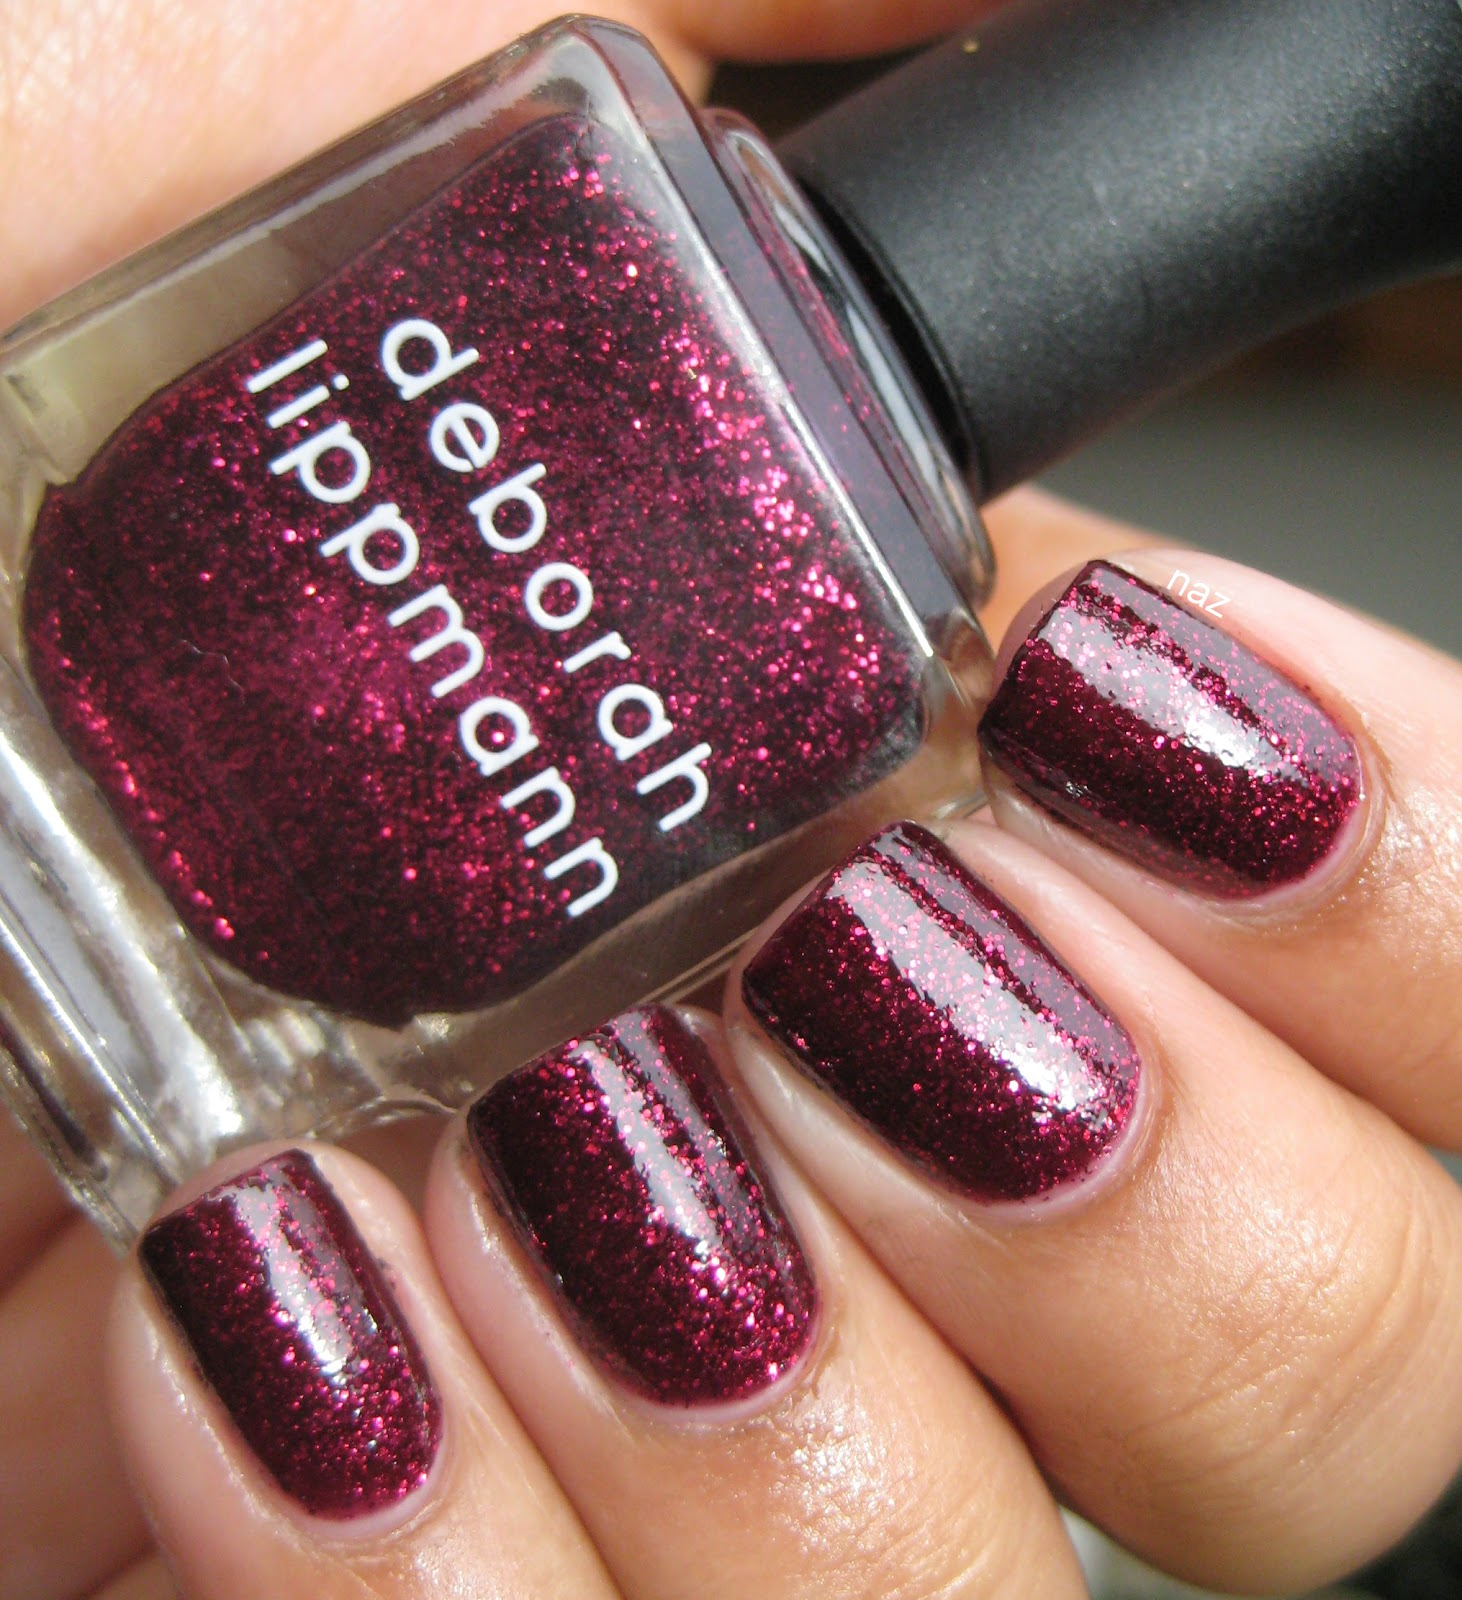 Giveaway: 8 Deborah Lippmann Nail Polishes to 8 Winners